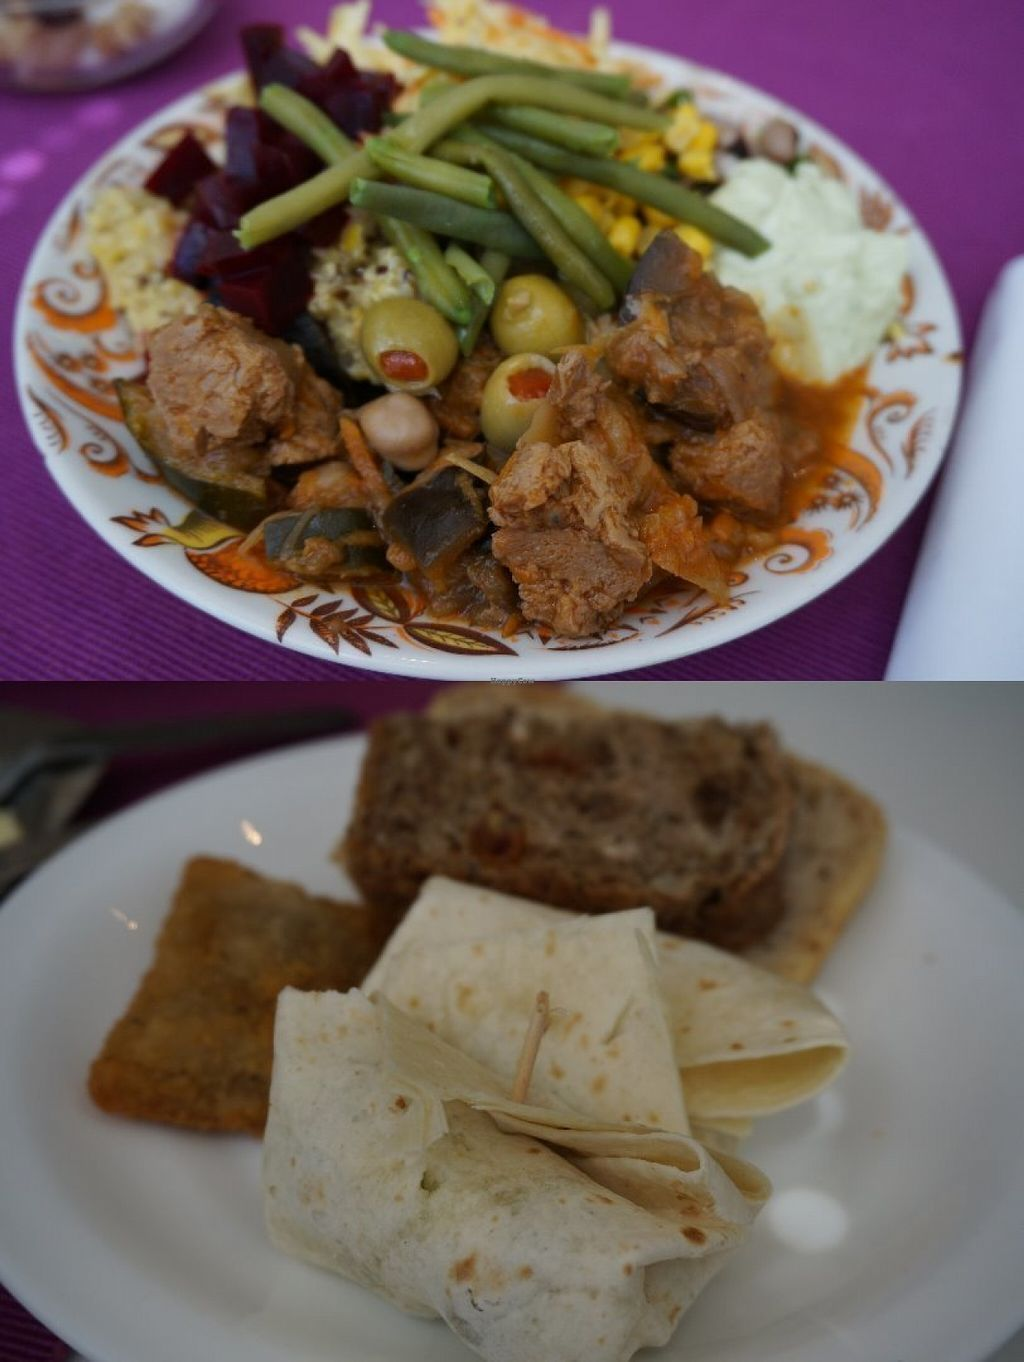 """Photo of Les Delices De Gigi  by <a href=""""/members/profile/Ricardo"""">Ricardo</a> <br/>Plate and appetizer from Sunday brunch <br/> July 17, 2016  - <a href='/contact/abuse/image/53495/160455'>Report</a>"""